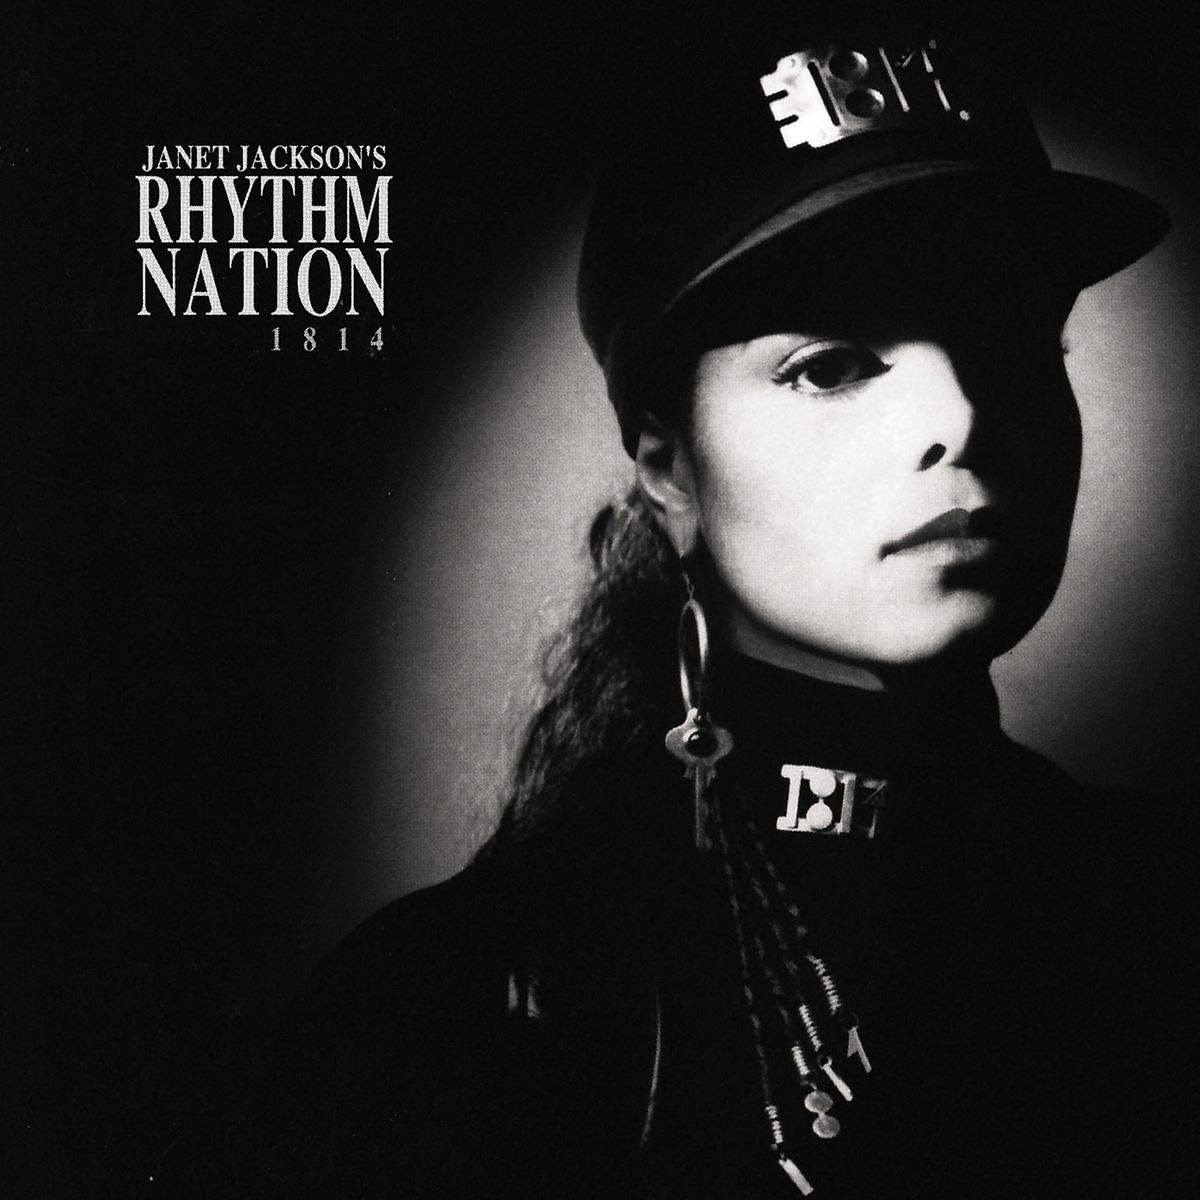 Jackson, Janet/Rhythm Nation 1814 [LP]